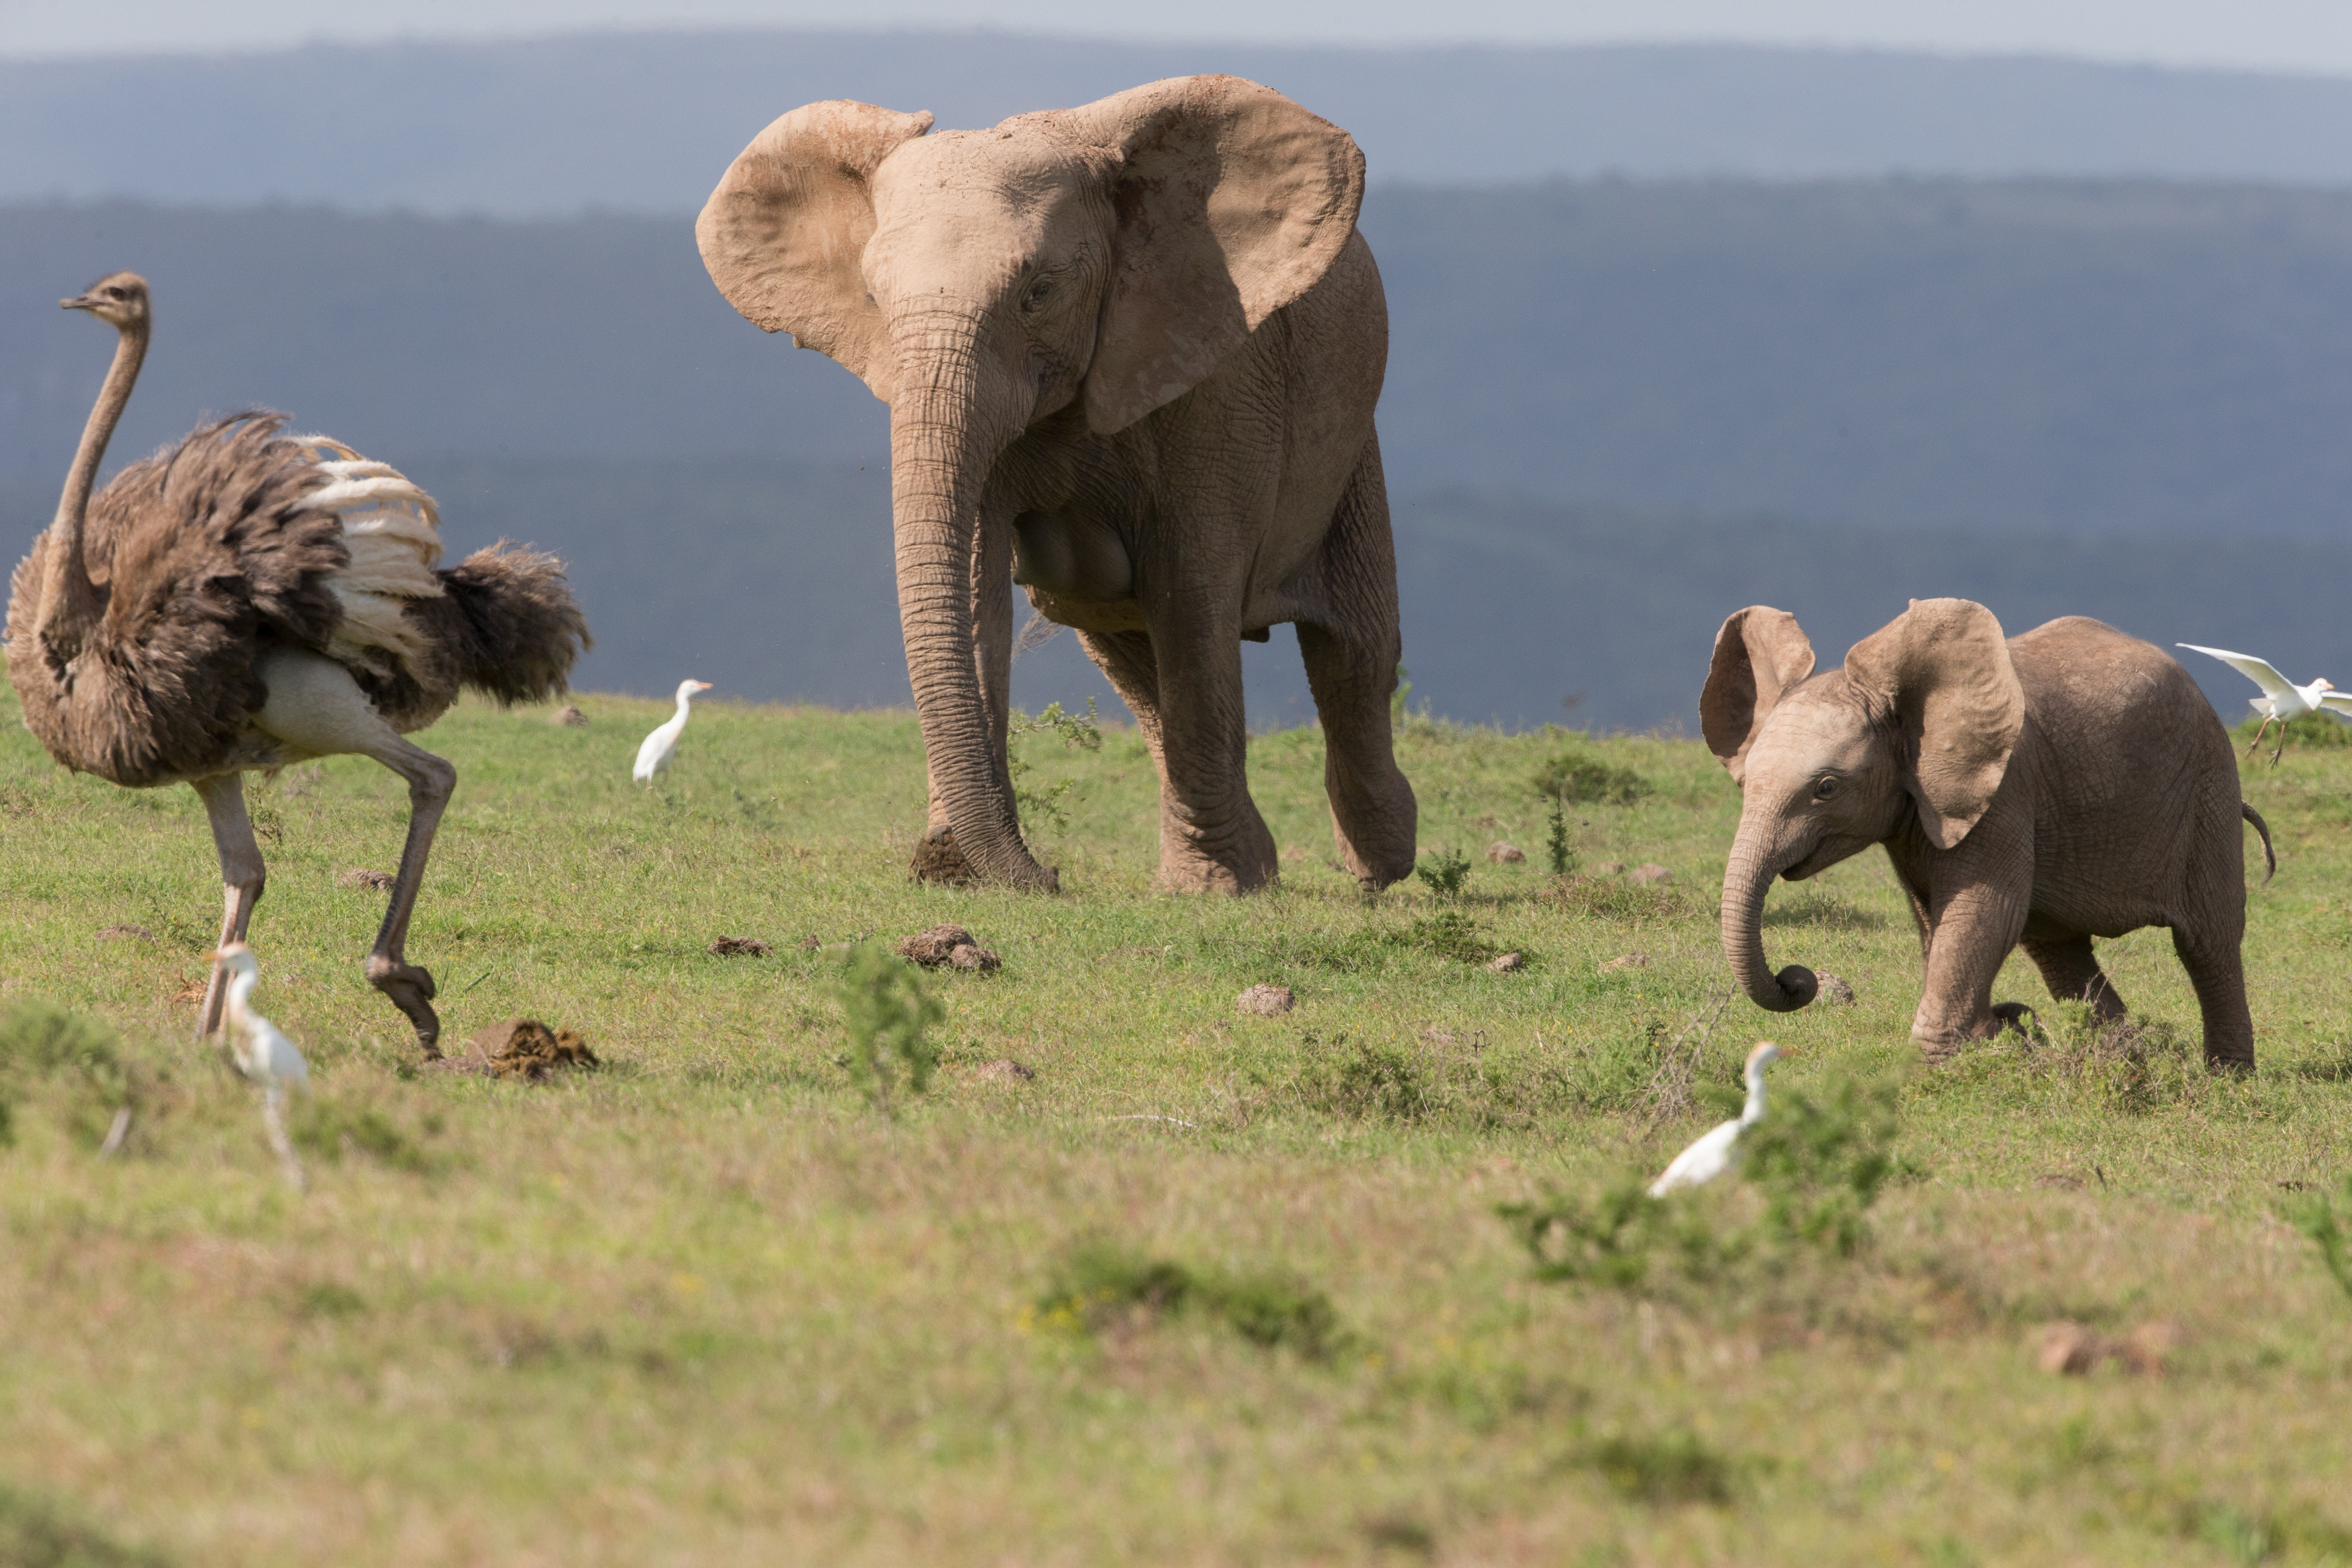 *** EXCLUSIVE *** ADDO ELEPHANT NATIONAL PARK SOUTH AFRICA - JUNE: The mother of a baby elephant tries to retrieve her offspring who is chasing an ostrich in June 2014, in Addo Elephant National Park, South Africa.A cute elephant calf chases an Ostrich in the Oddo Elephant National Park in South Africa. The herd of elephants were grazing when the youngster noticed the ostrich nearby and gave chase.PHOTOGRAPH BY Greatstock / Barcroft MediaUK Office, London.T +44 845 370 2233W www.barcroftmedia.comUSA Office, New York City.T +1 212 796 2458W www.barcroftusa.comIndian Office, Delhi.T +91 11 4053 2429W www.barcroftindia.com